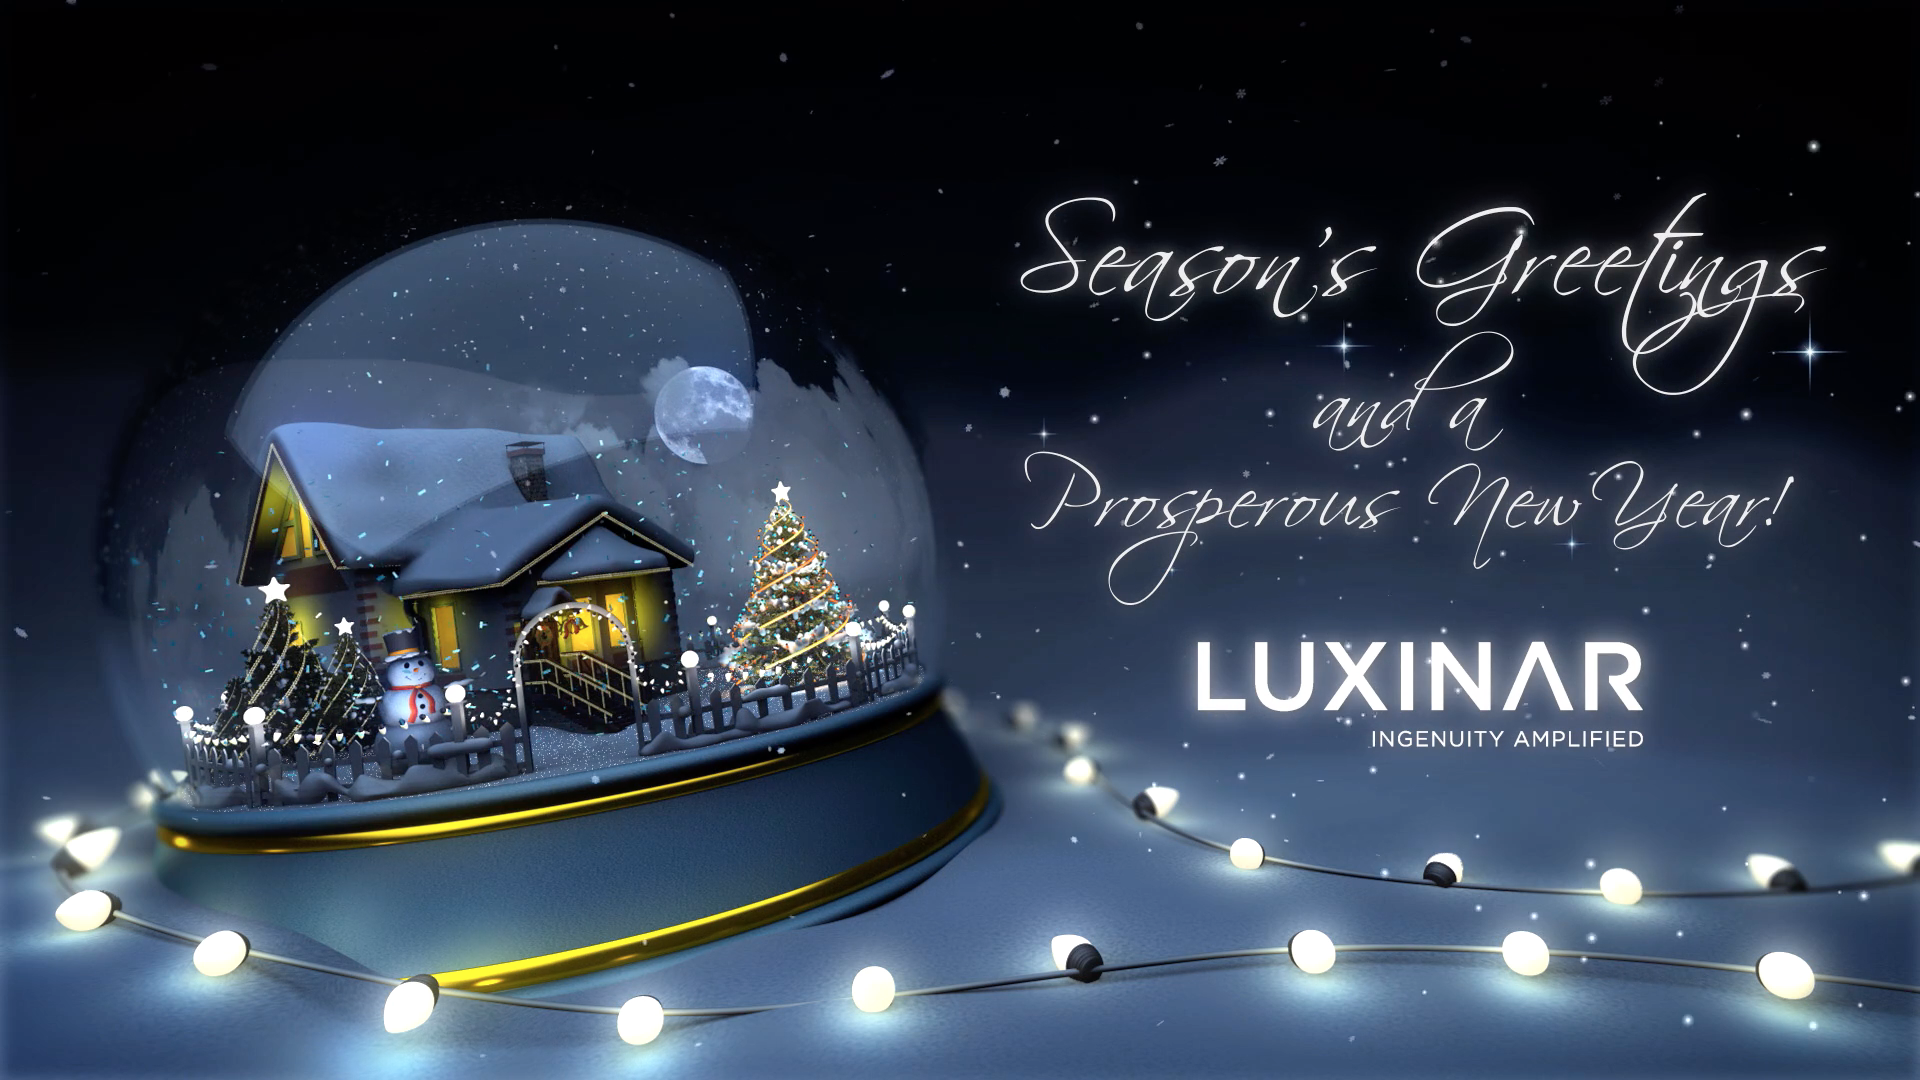 Luxinar Christmas message (English)